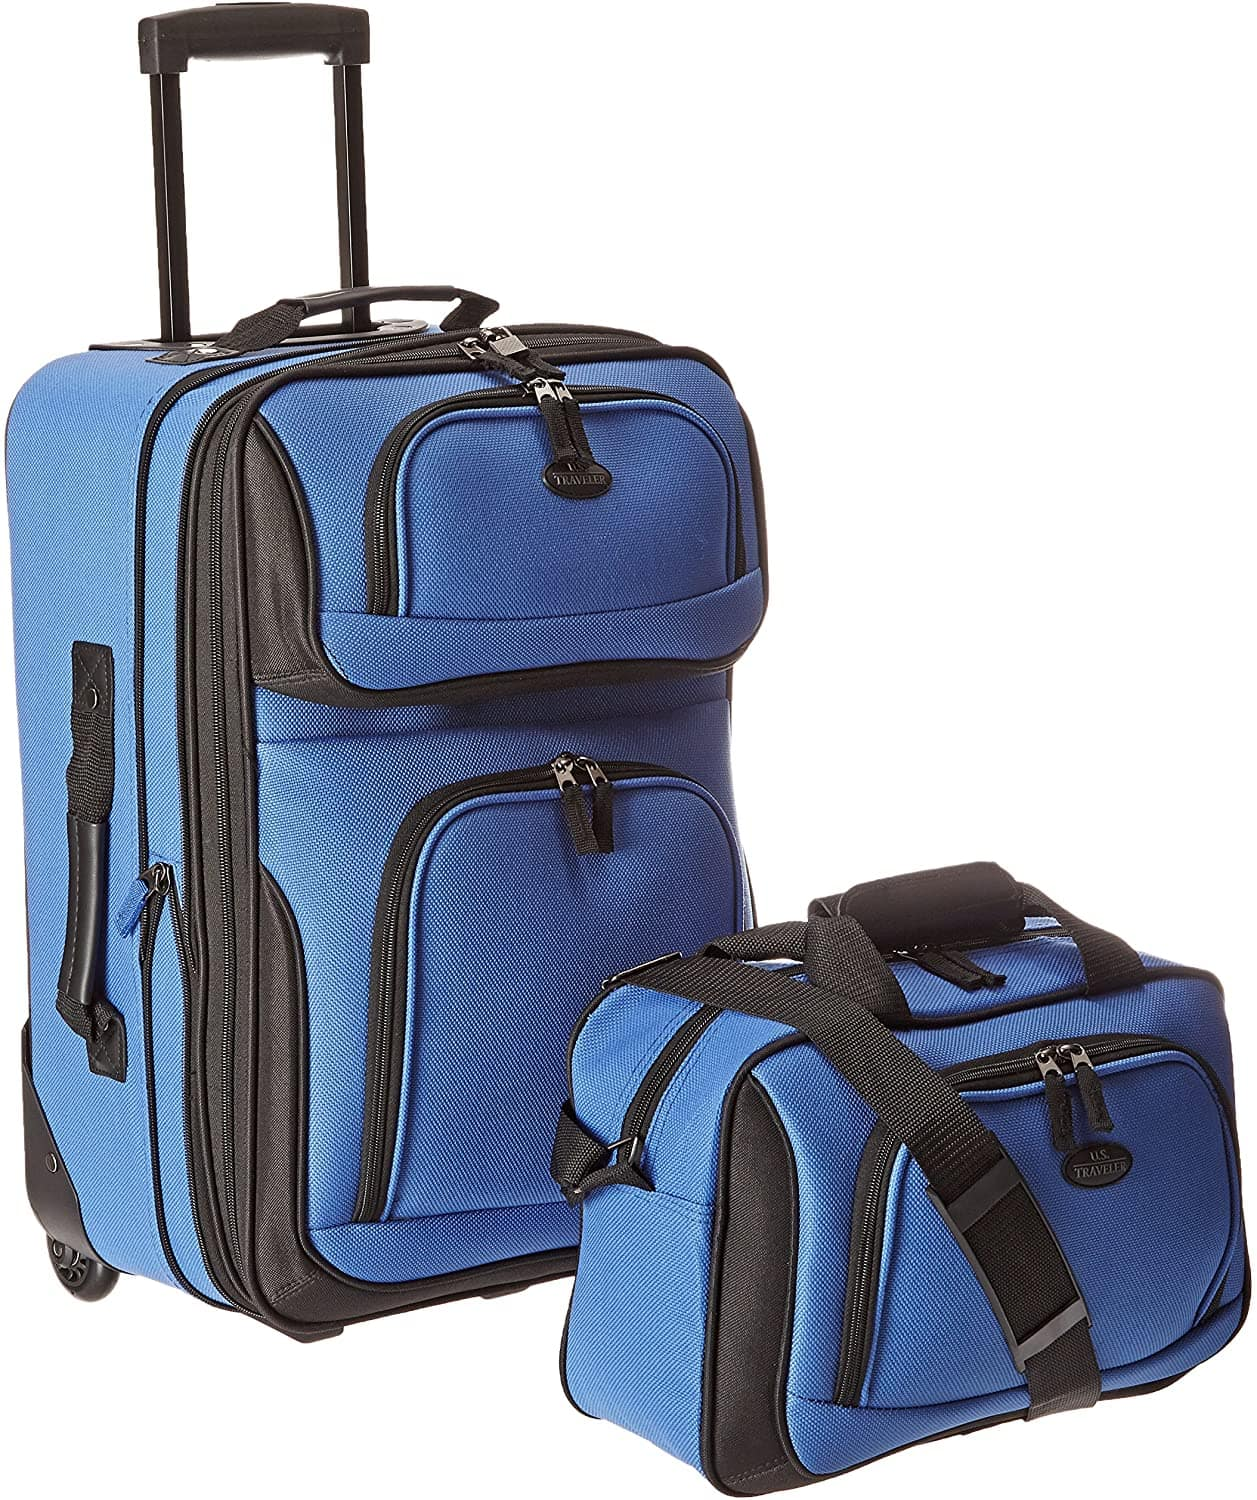 2-Piece U.S. Traveler Rio Expandable Carry-On Luggage Set (Royal Blue) $27.87 + Free Shipping